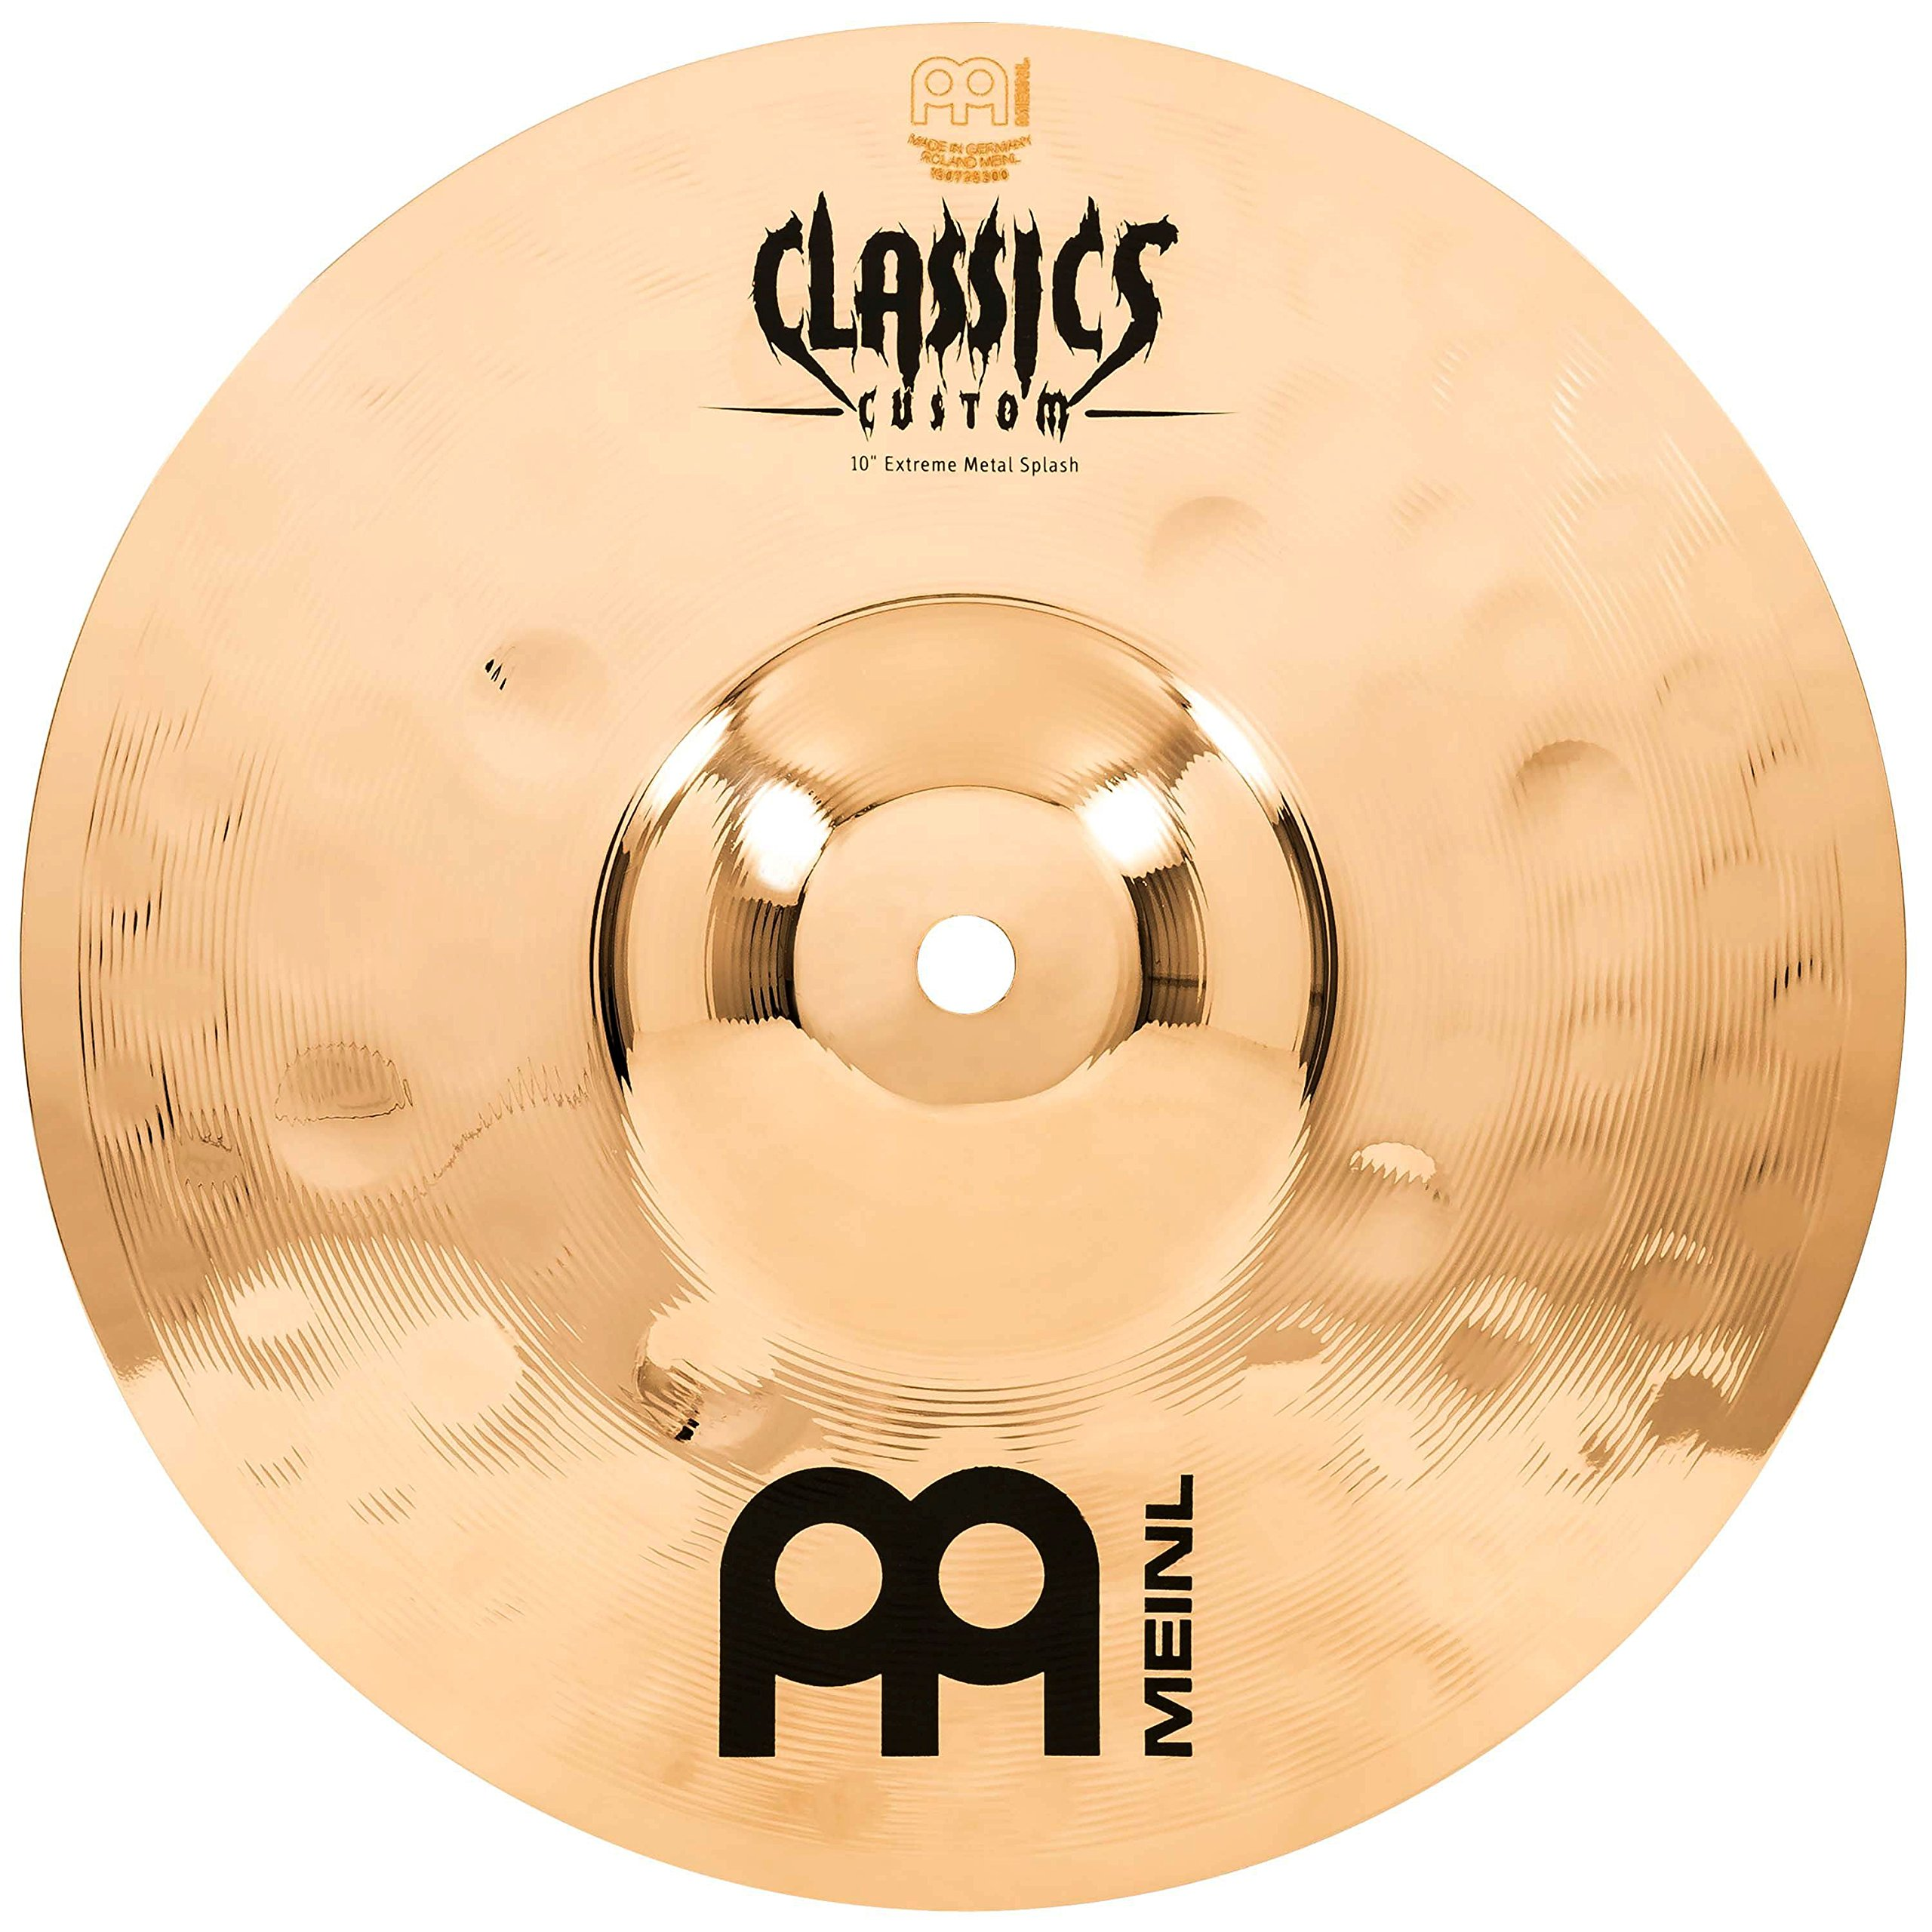 Meinl 10'' Splash Cymbal - Classics Custom Extreme Metal - Made in Germany, 2-YEAR WARRANTY (CC10EMS-B) by Meinl Cymbals